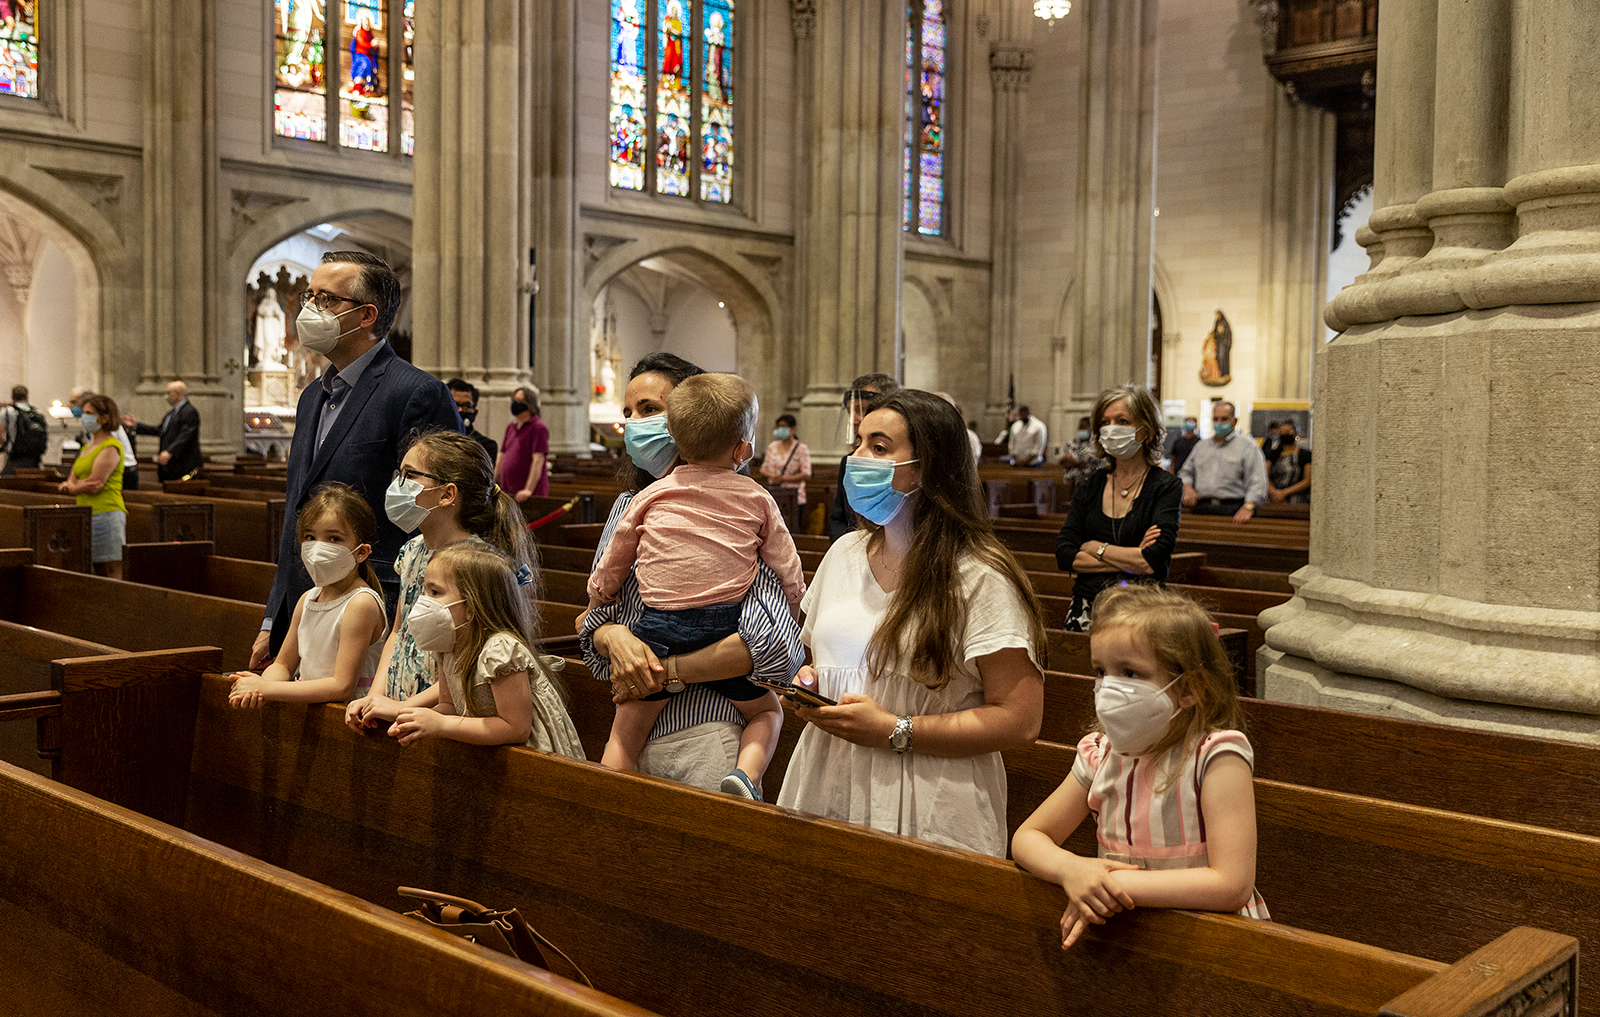 A family prays during St. Patrick's Cathedral's first public Mass since March on June 28, 2020, in New York. (Lev Radin/Pacific Press/LightRocket via Getty Images via CNN)